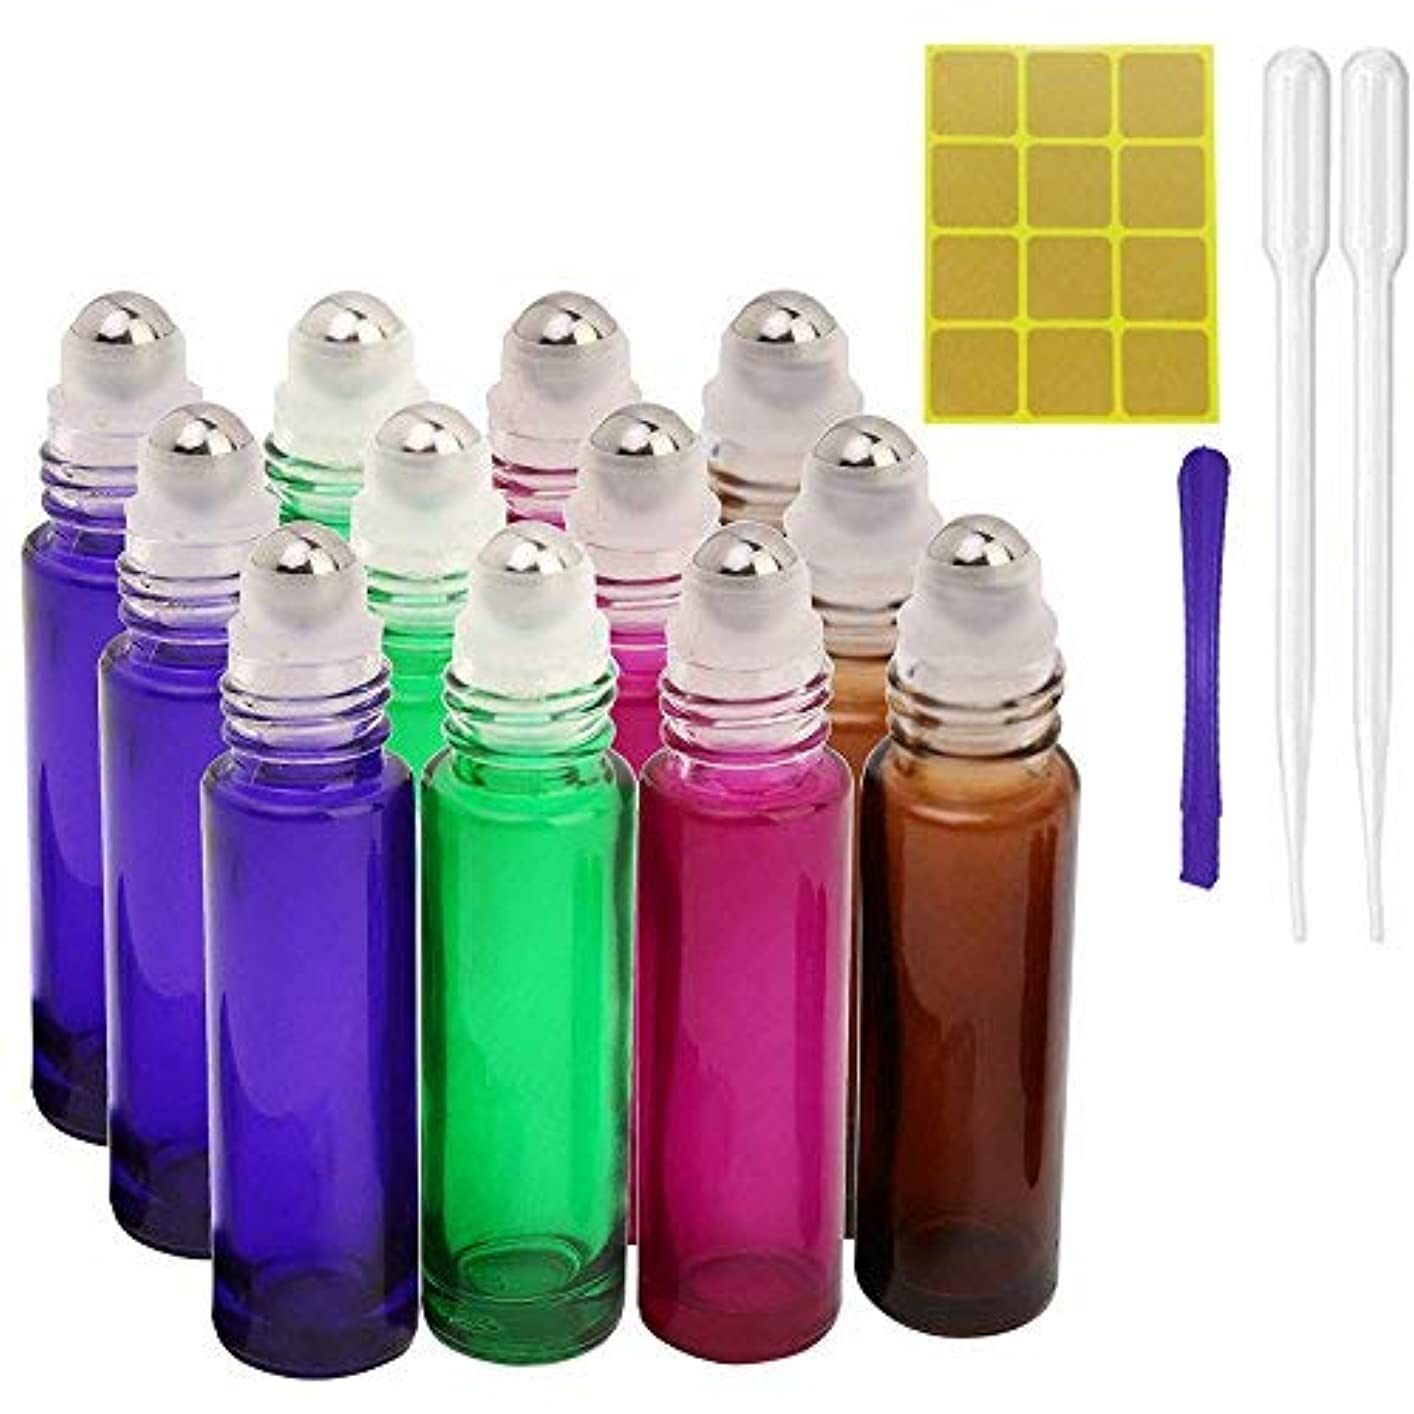 所有者祖先魅力的であることへのアピール12, 10ml Roller Bottles for Essential Oils - Glass Refillable Roller on Bottles with 1 Opener, 2 Droppers, 24...